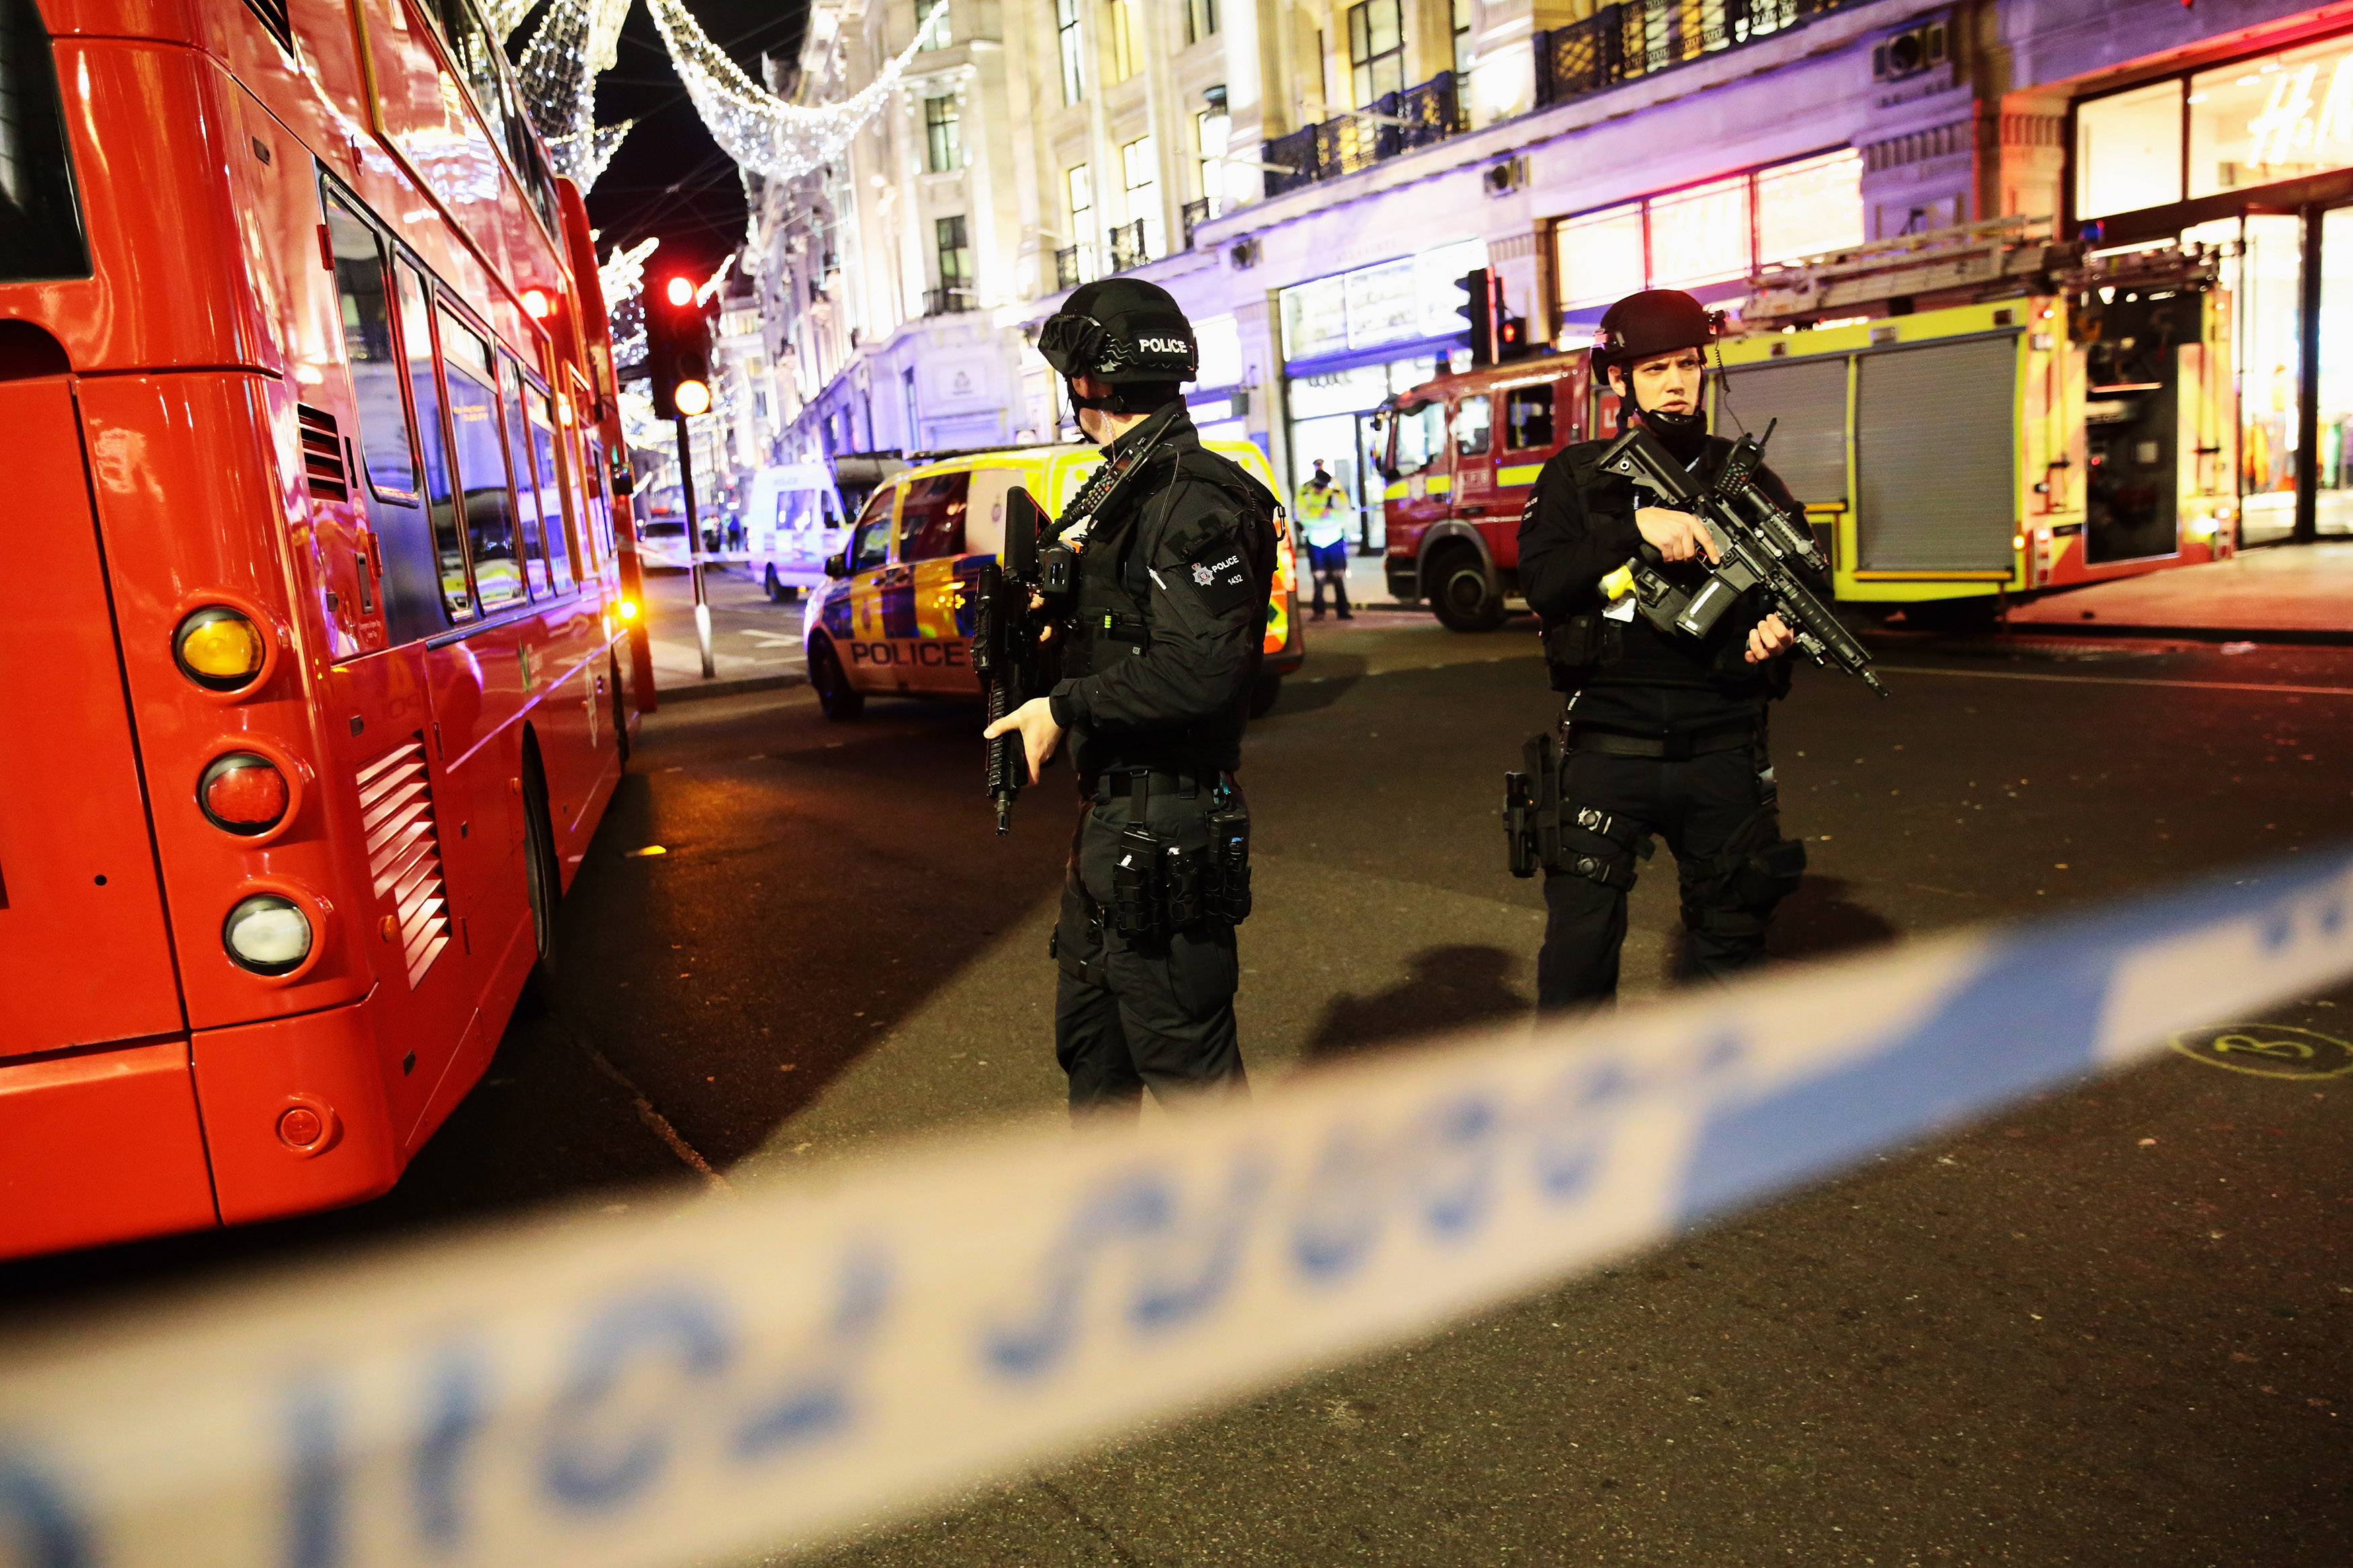 London underground stations reopen after Oxford Circus incident